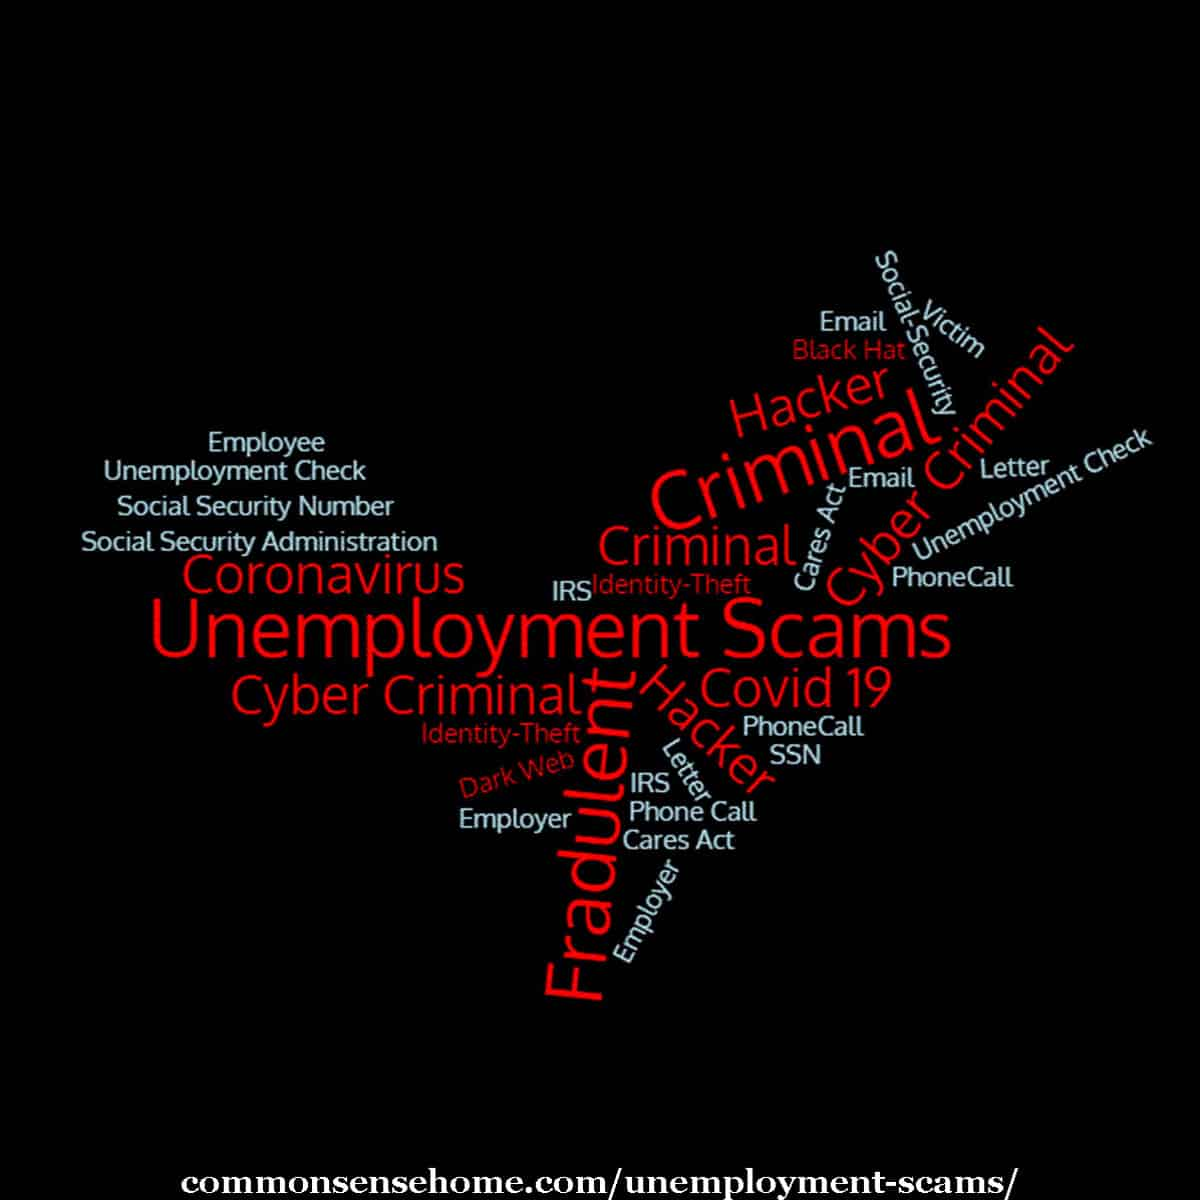 How to Protect Yourself from Unemployment Scams